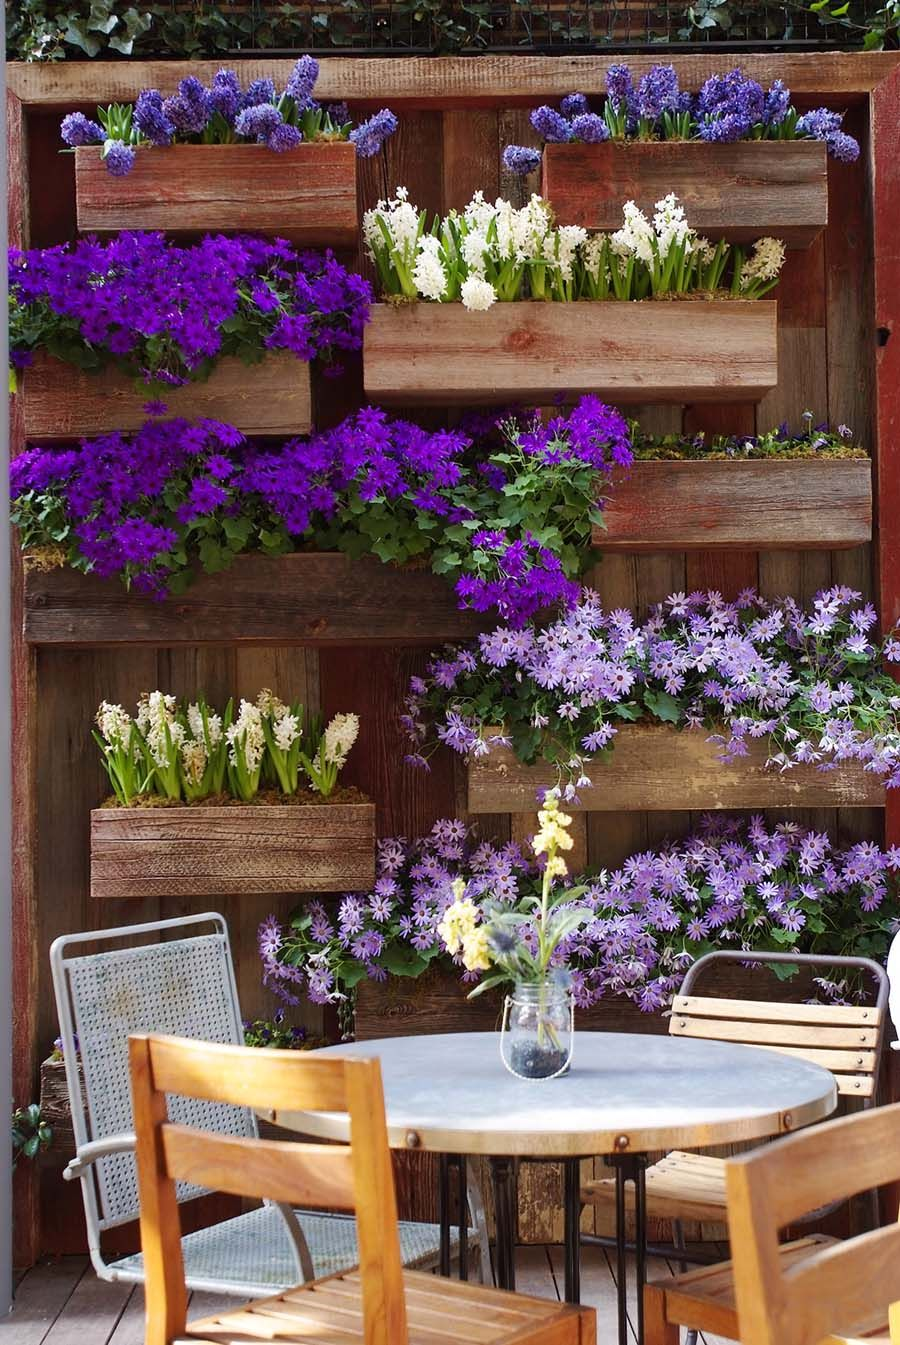 50 Vertical Garden Ideas That Will Change The Way You Think About